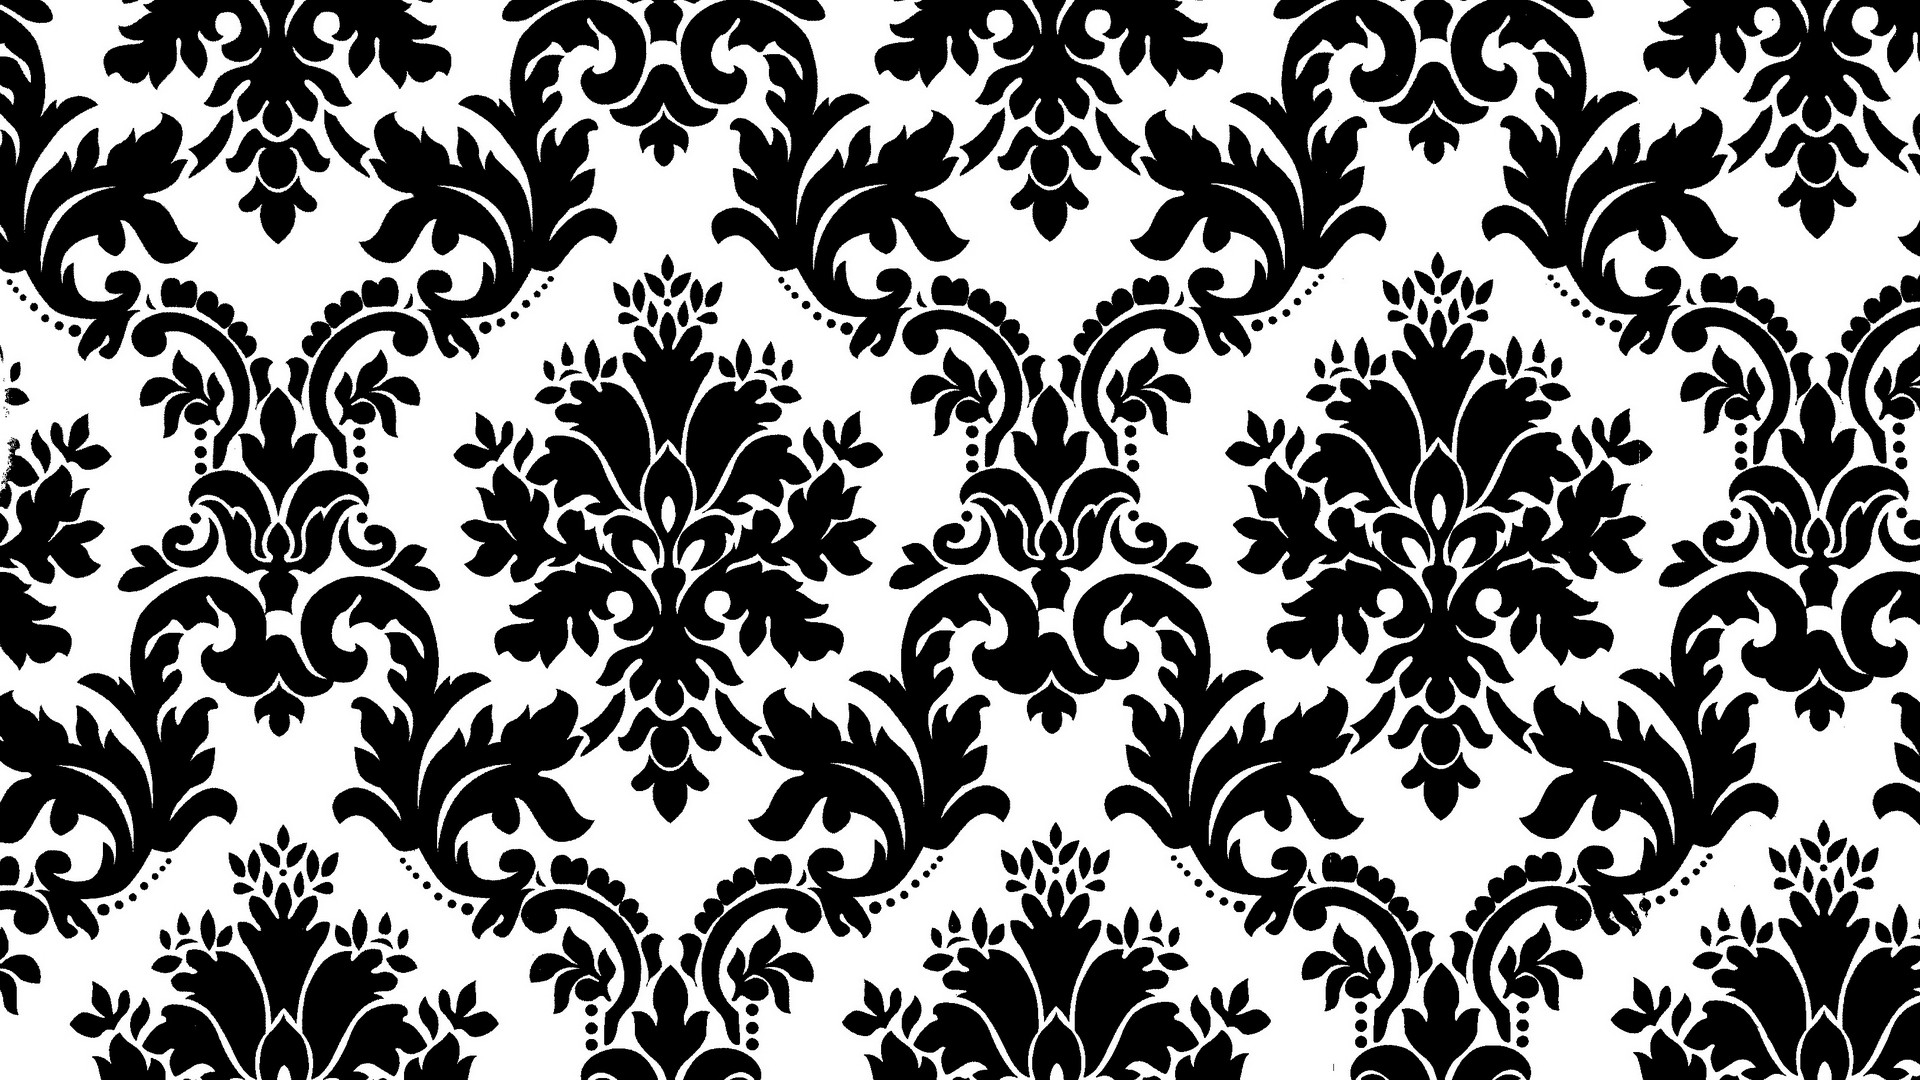 Black And White Pattern Backgrounds  Pixelstalknet